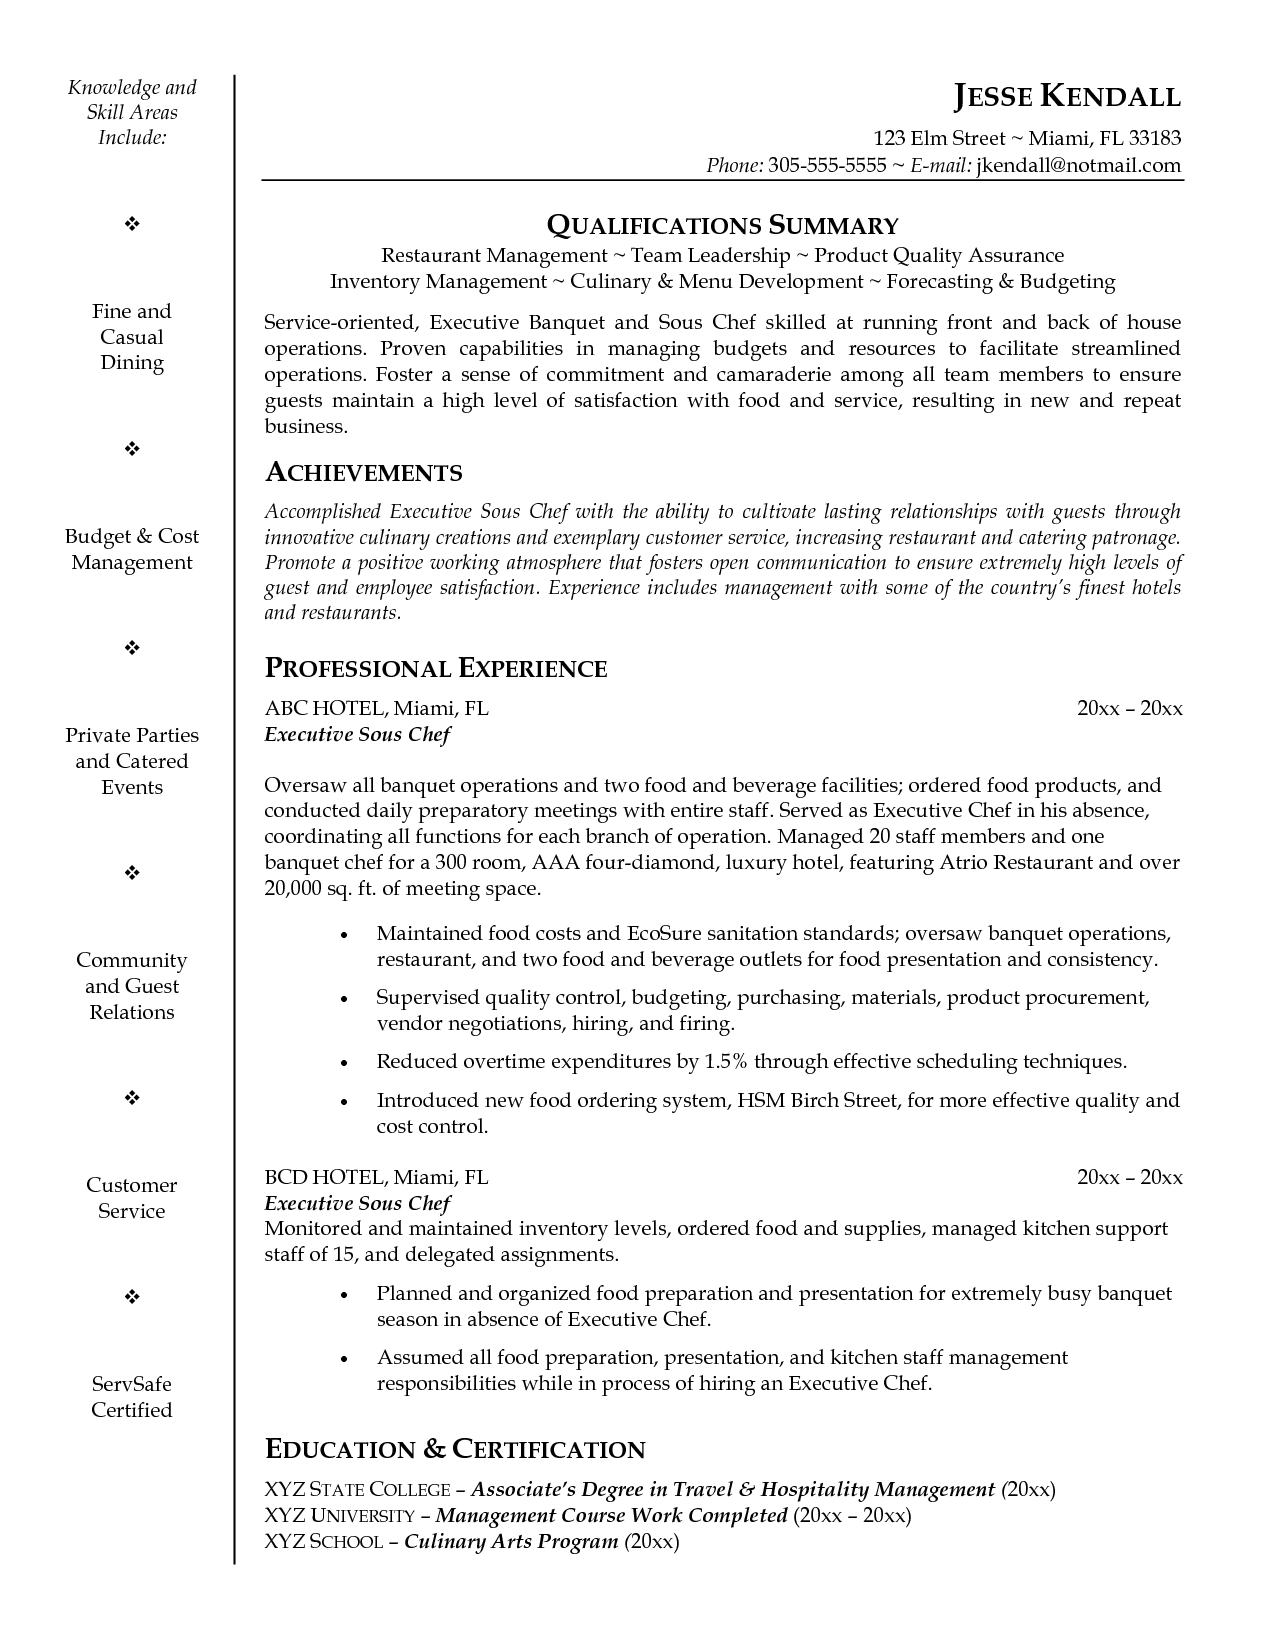 Sous Chef Resume Examples Chef Resume Resume Examples Job Resume Examples